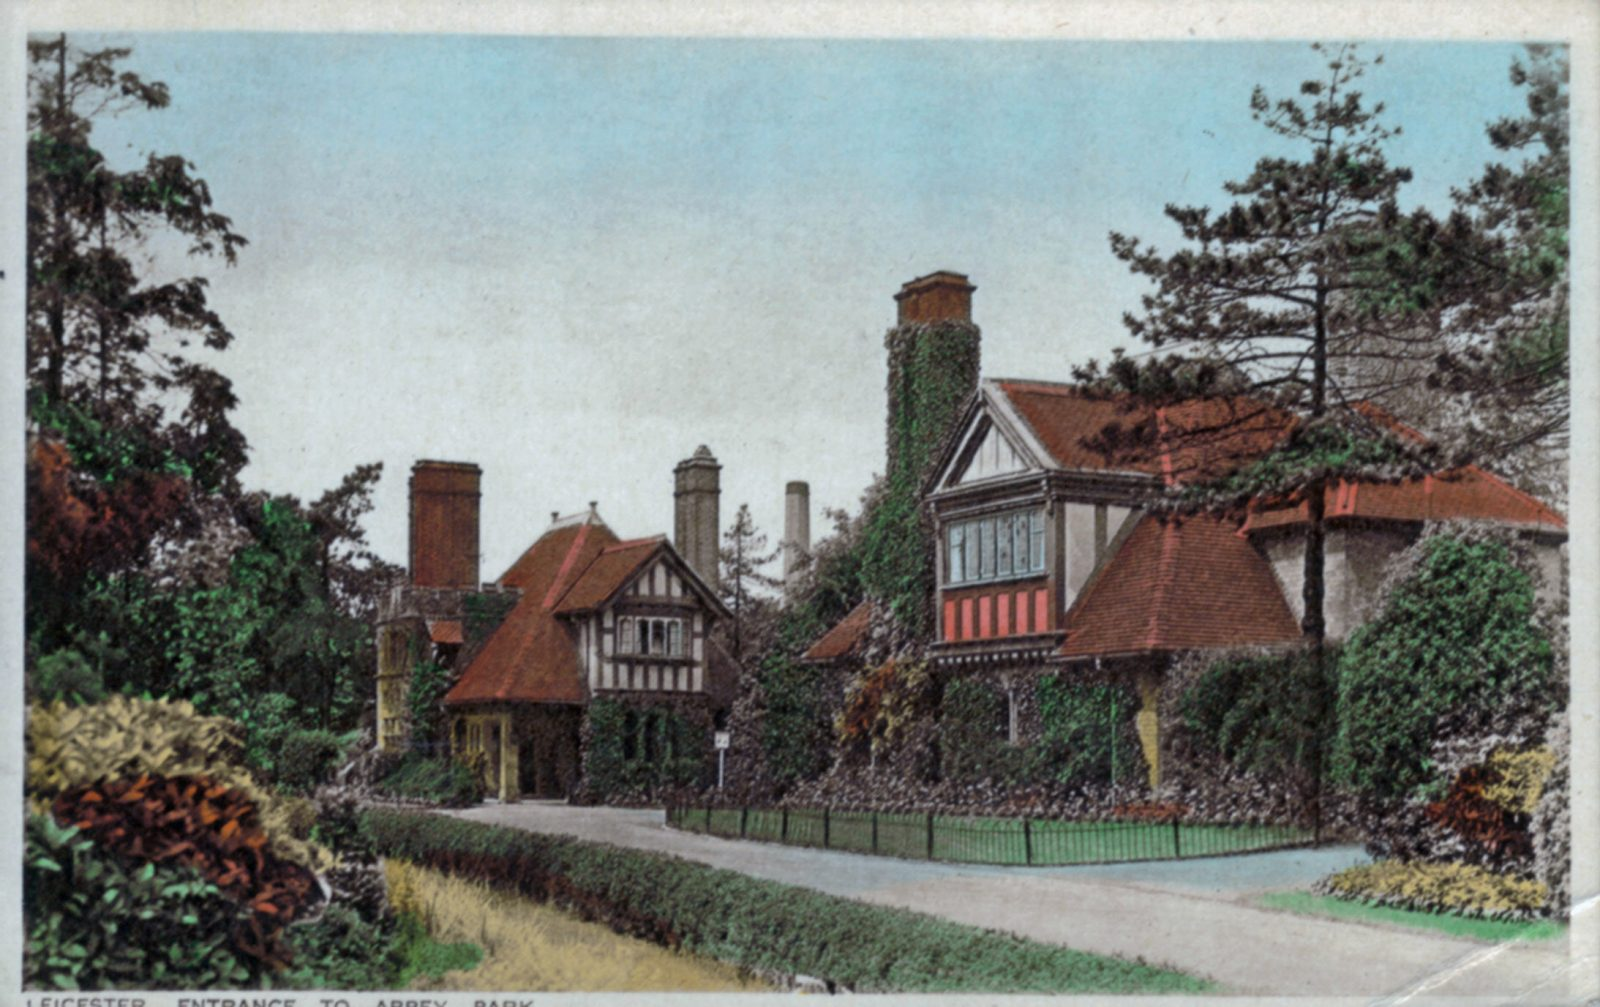 Abbey Park, Leicester. 1901-1920: Leicester Entrance to Park. (File:1014)